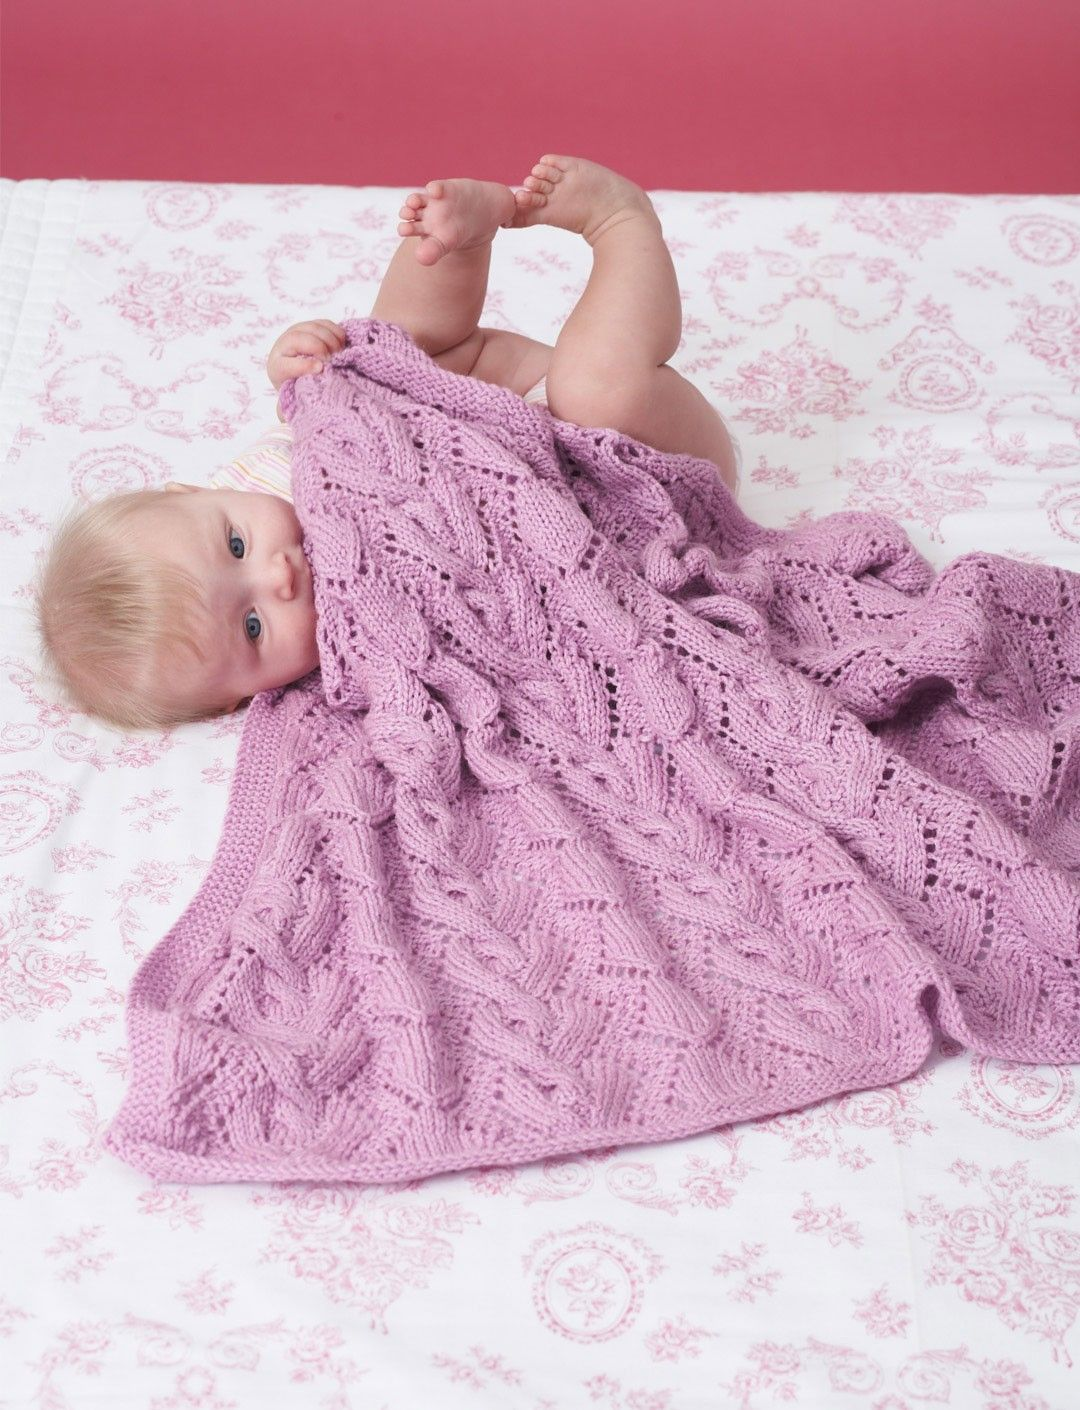 Cable and Lace Blanket | Blankets/Throws | Pinterest | Blanket ...